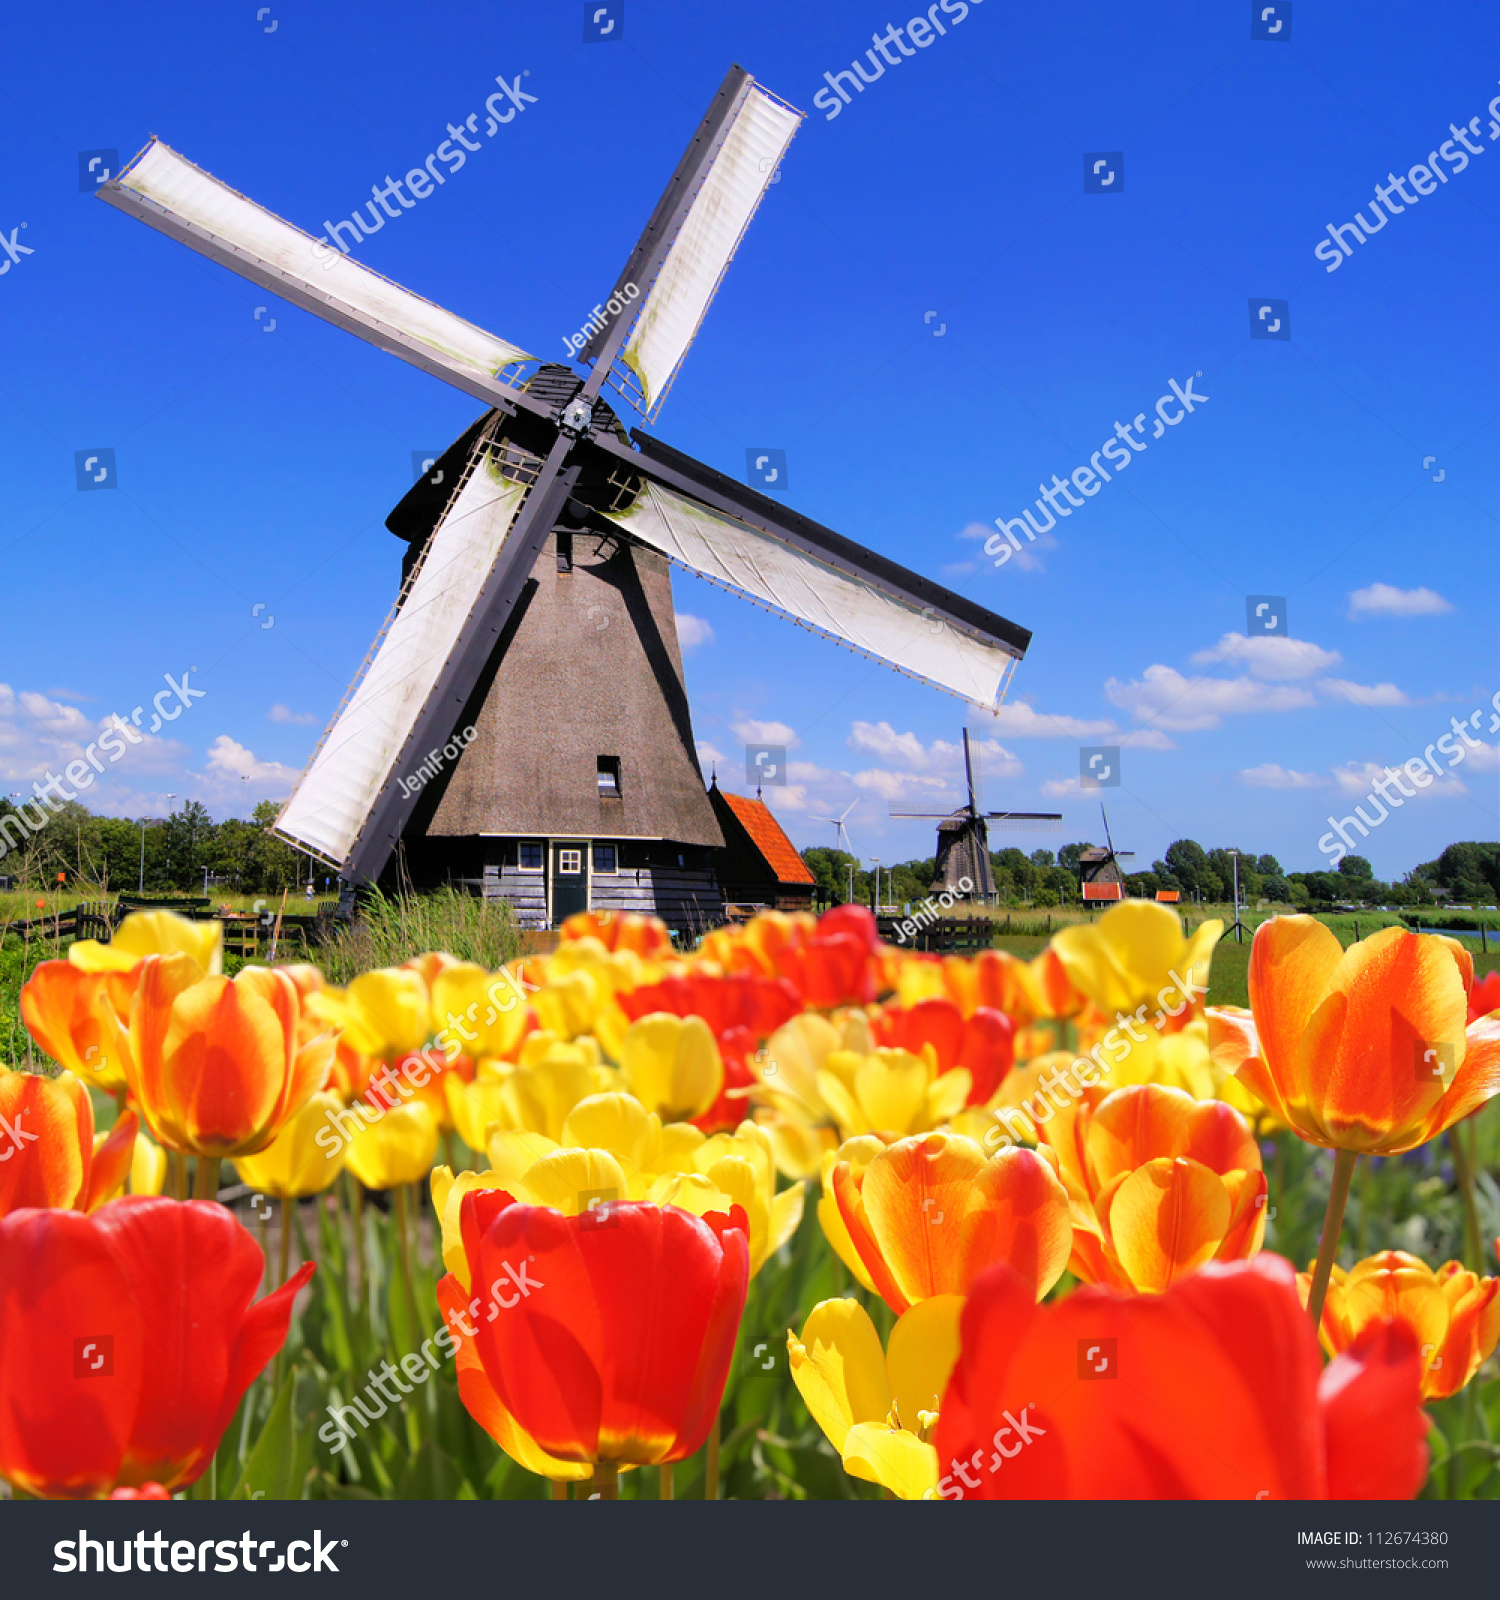 Traditional Dutch Interior Design: Traditional Dutch Windmills With Vibrant Tulips In The